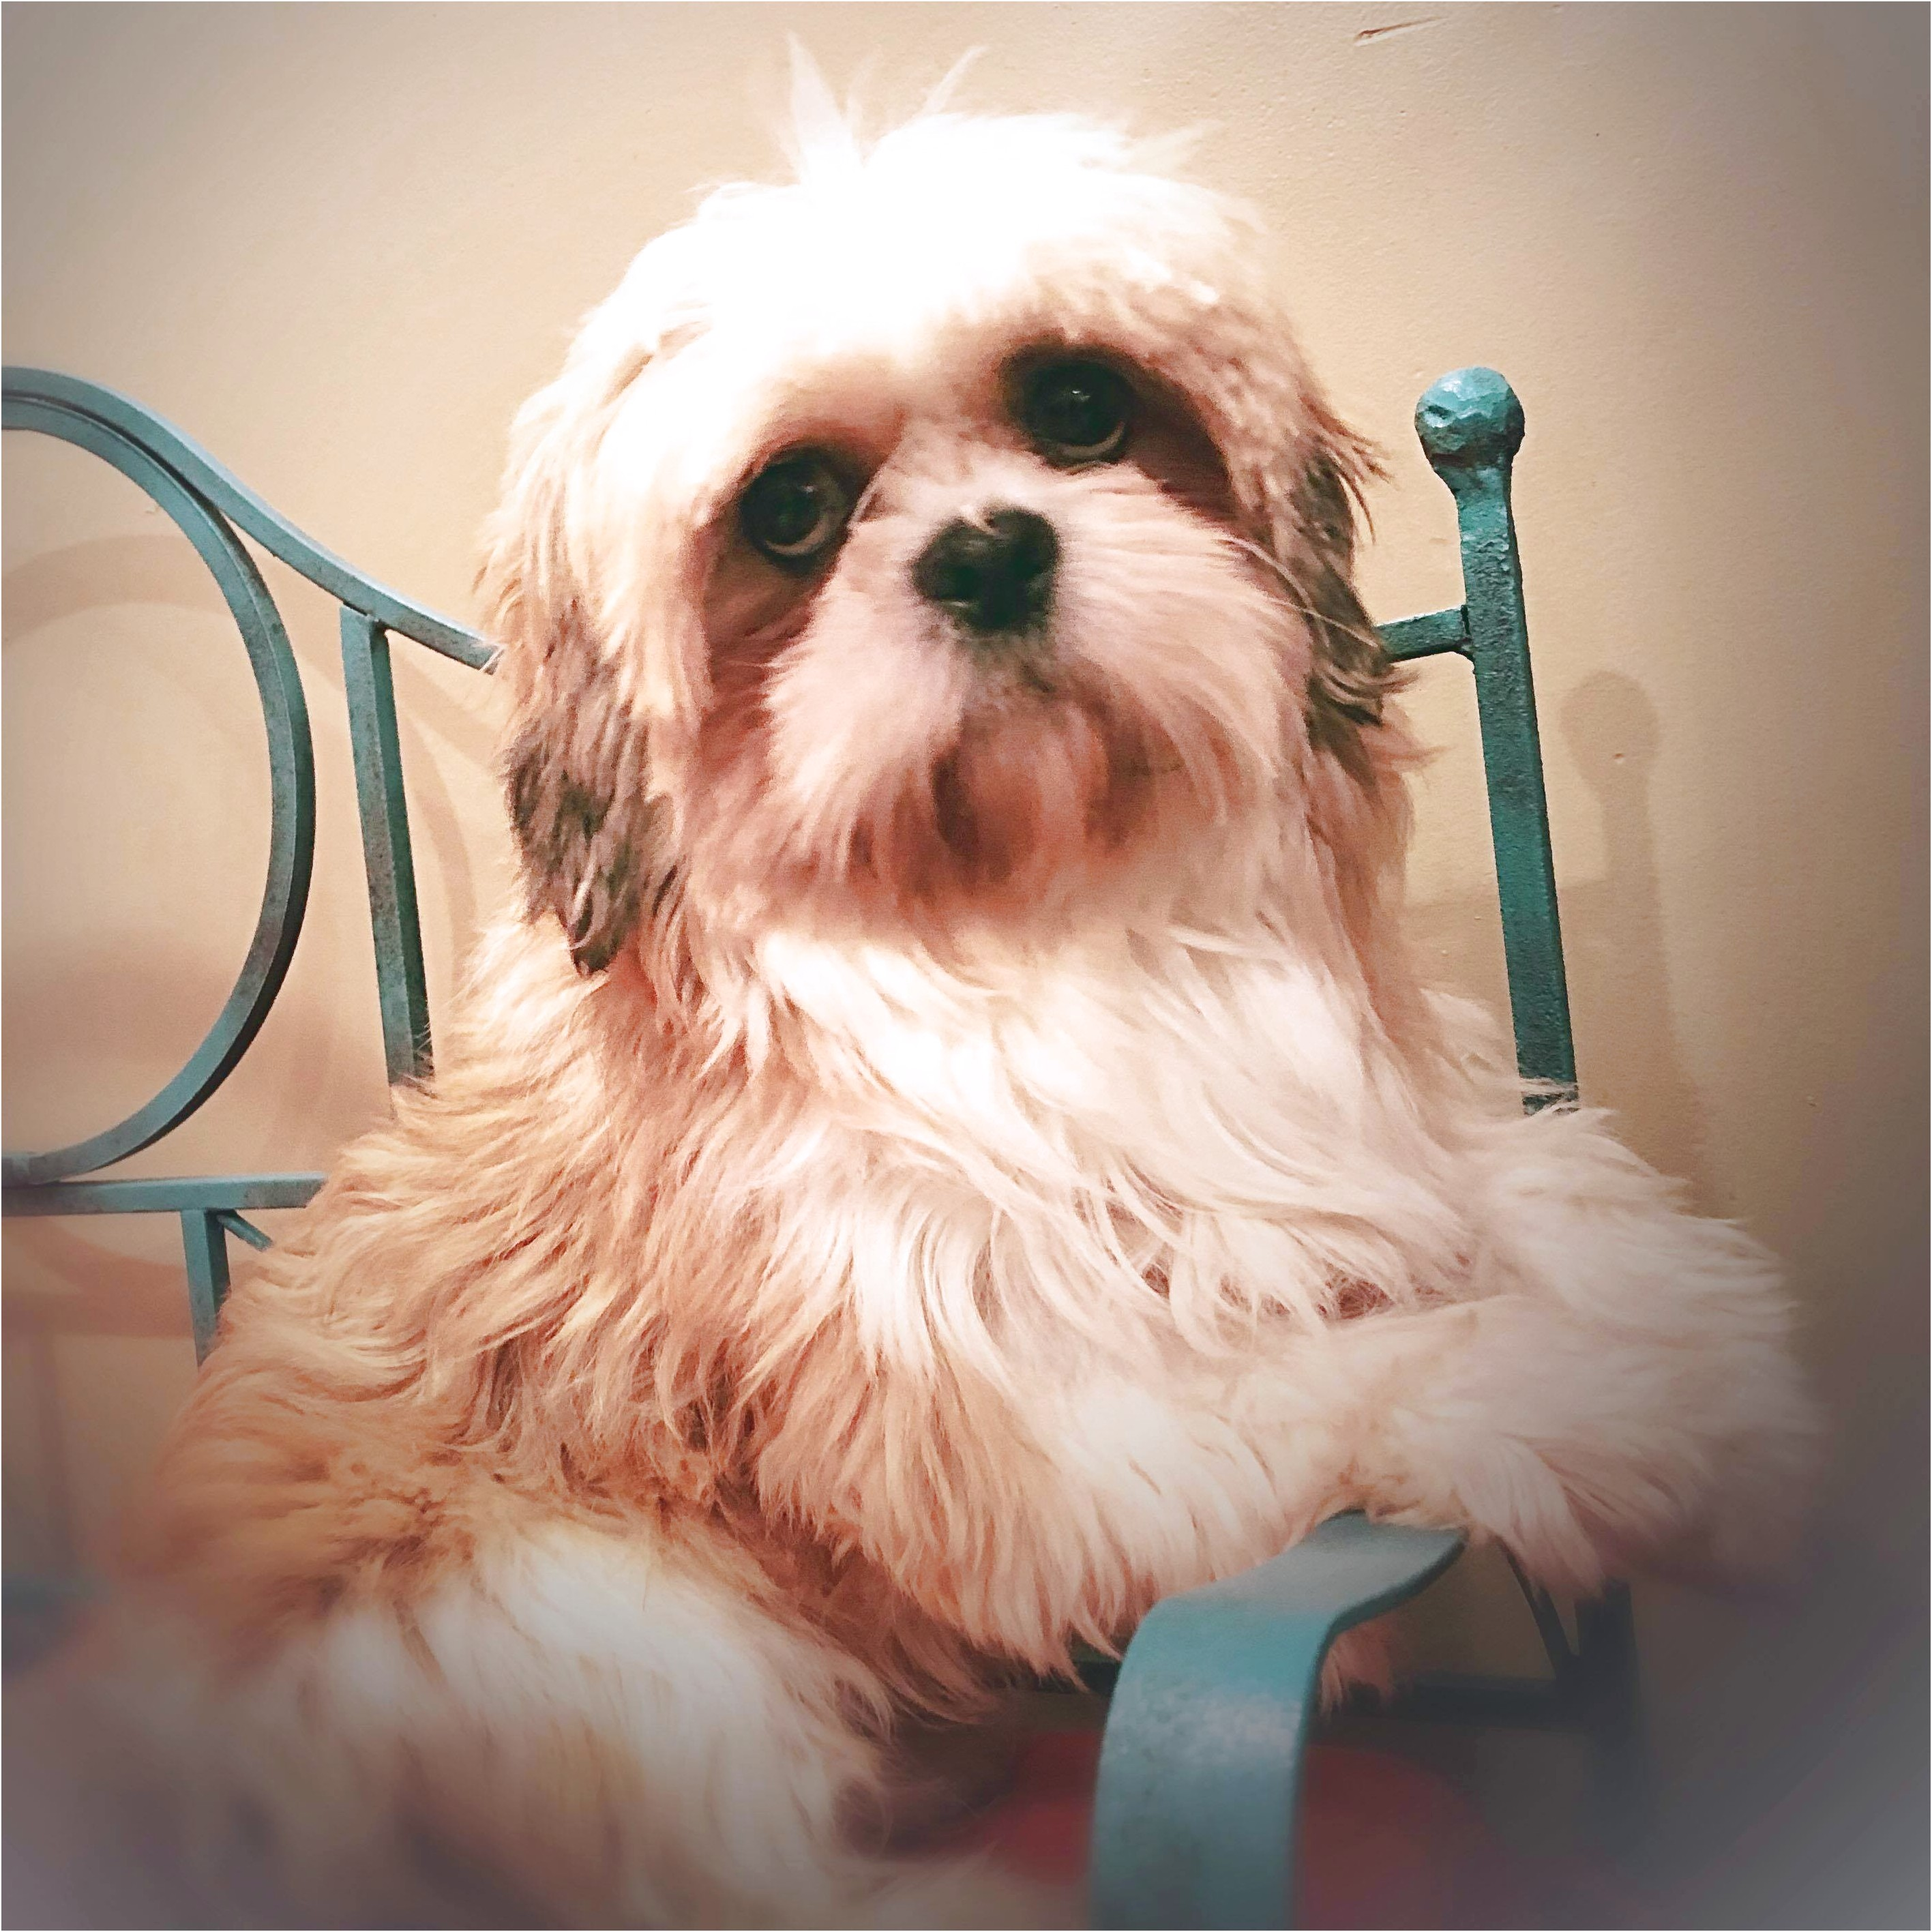 shih tzu puppy for sale cleveland ohio